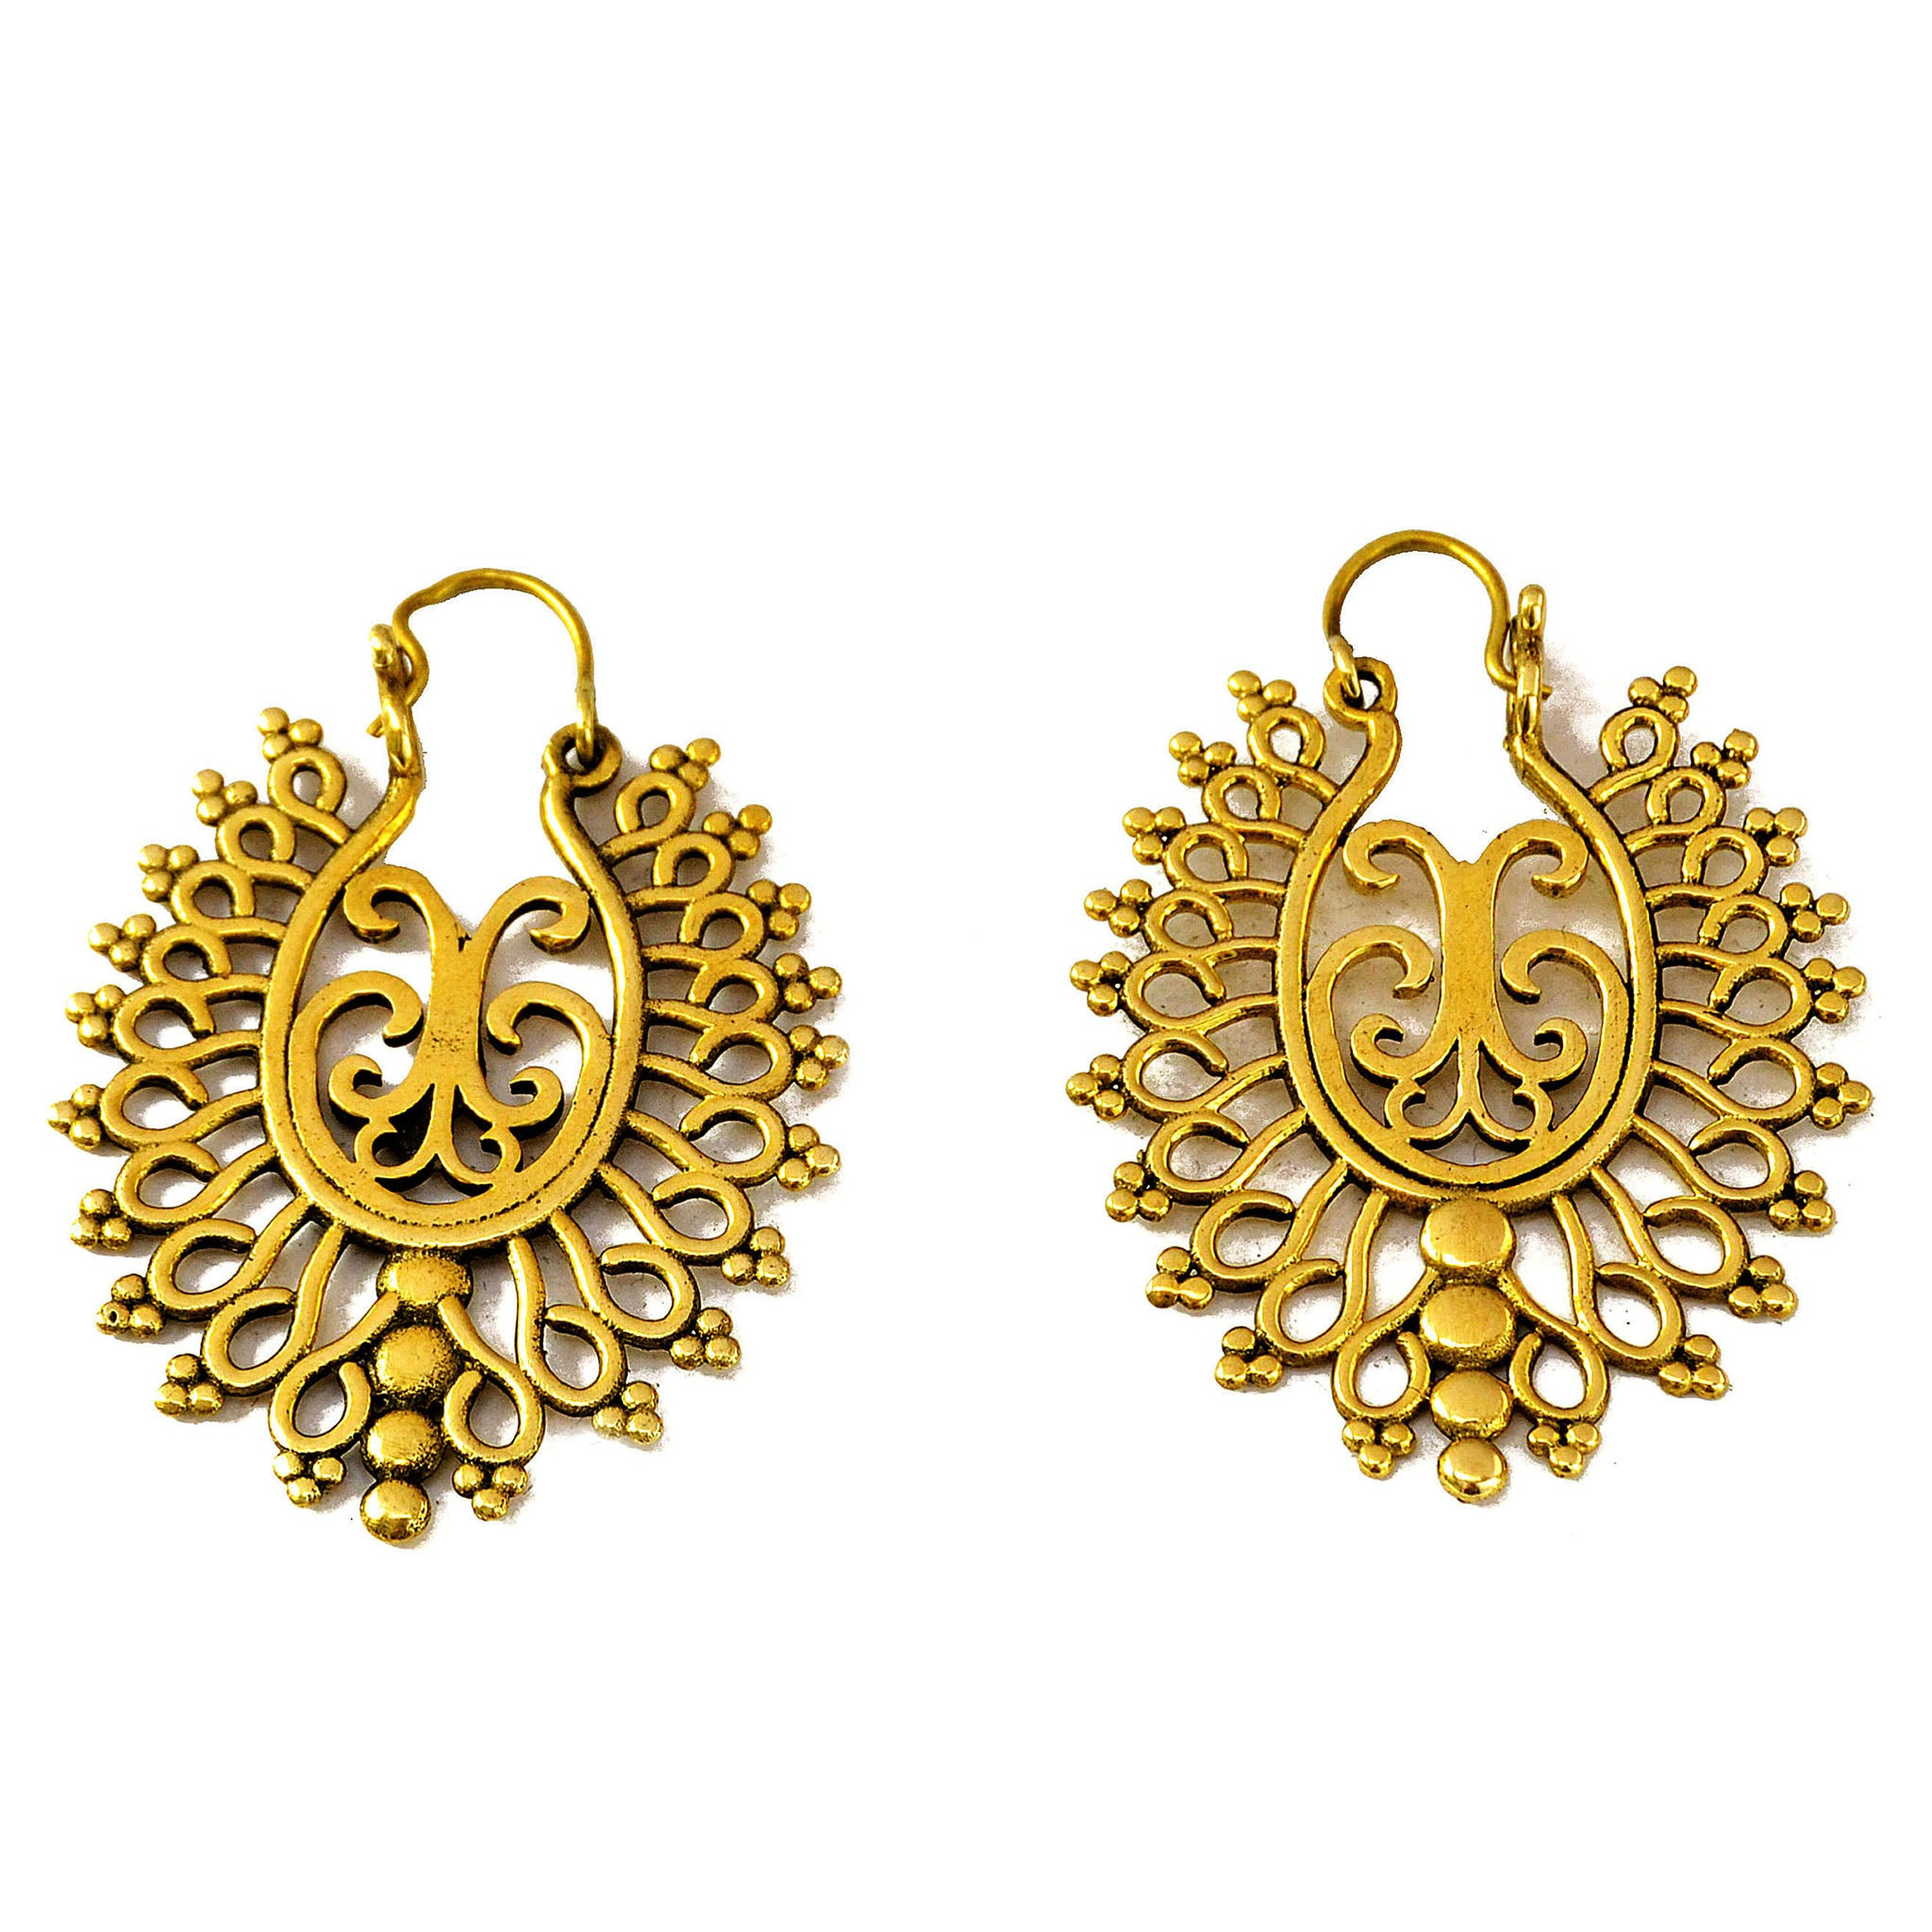 Antique indian earrings